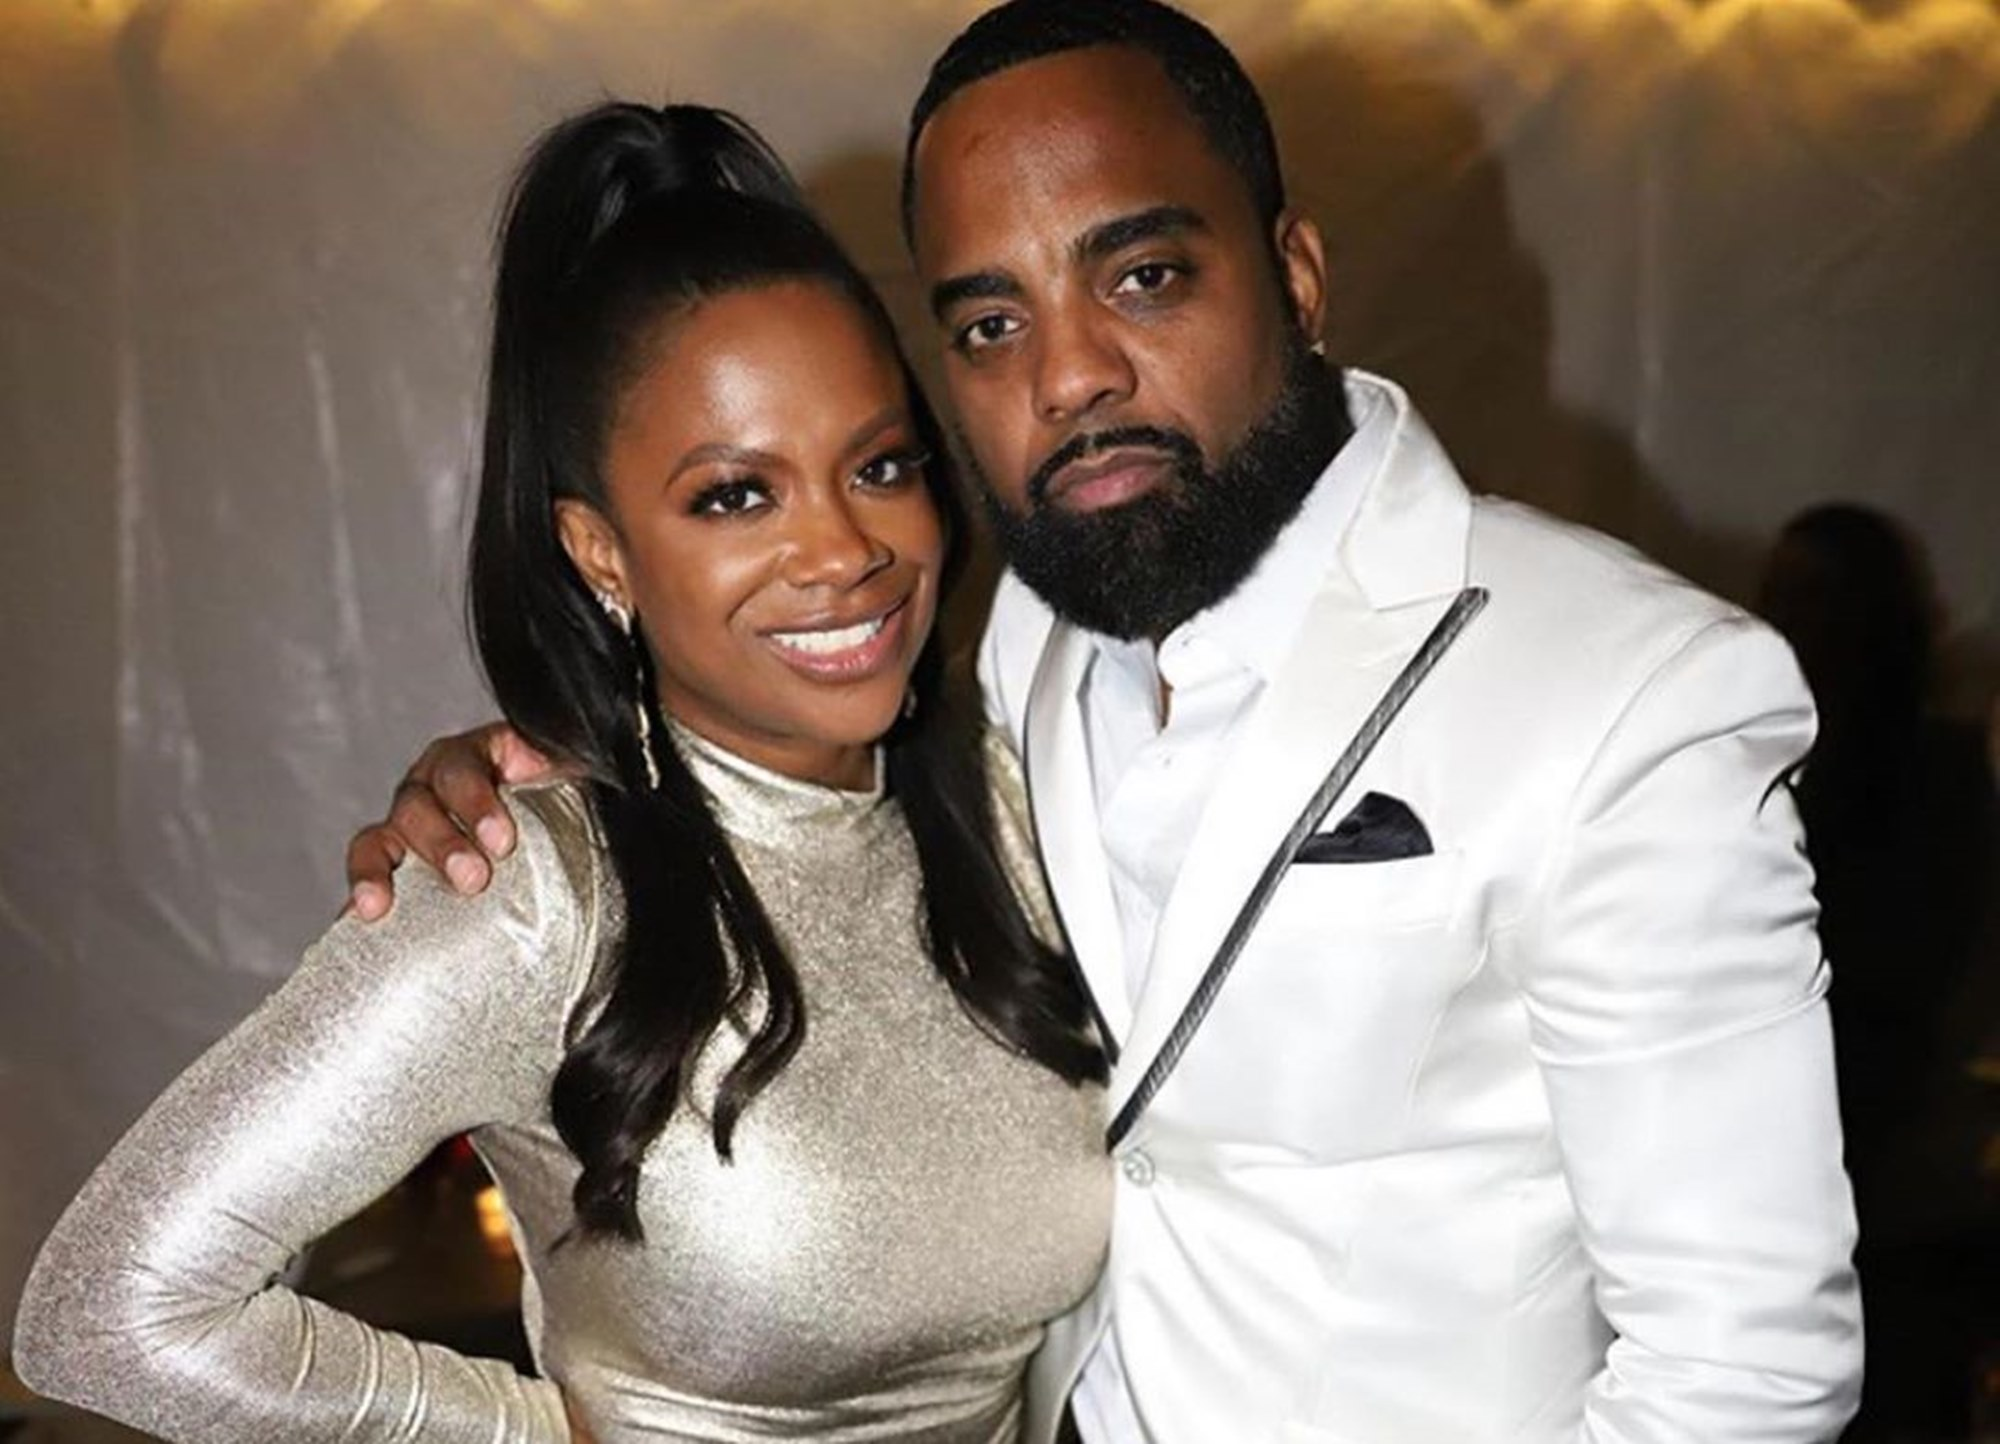 Kandi Burruss Reminds Fans To Save The Date: On May 10th, The RHOA Virtual Reunion Is Set To Air